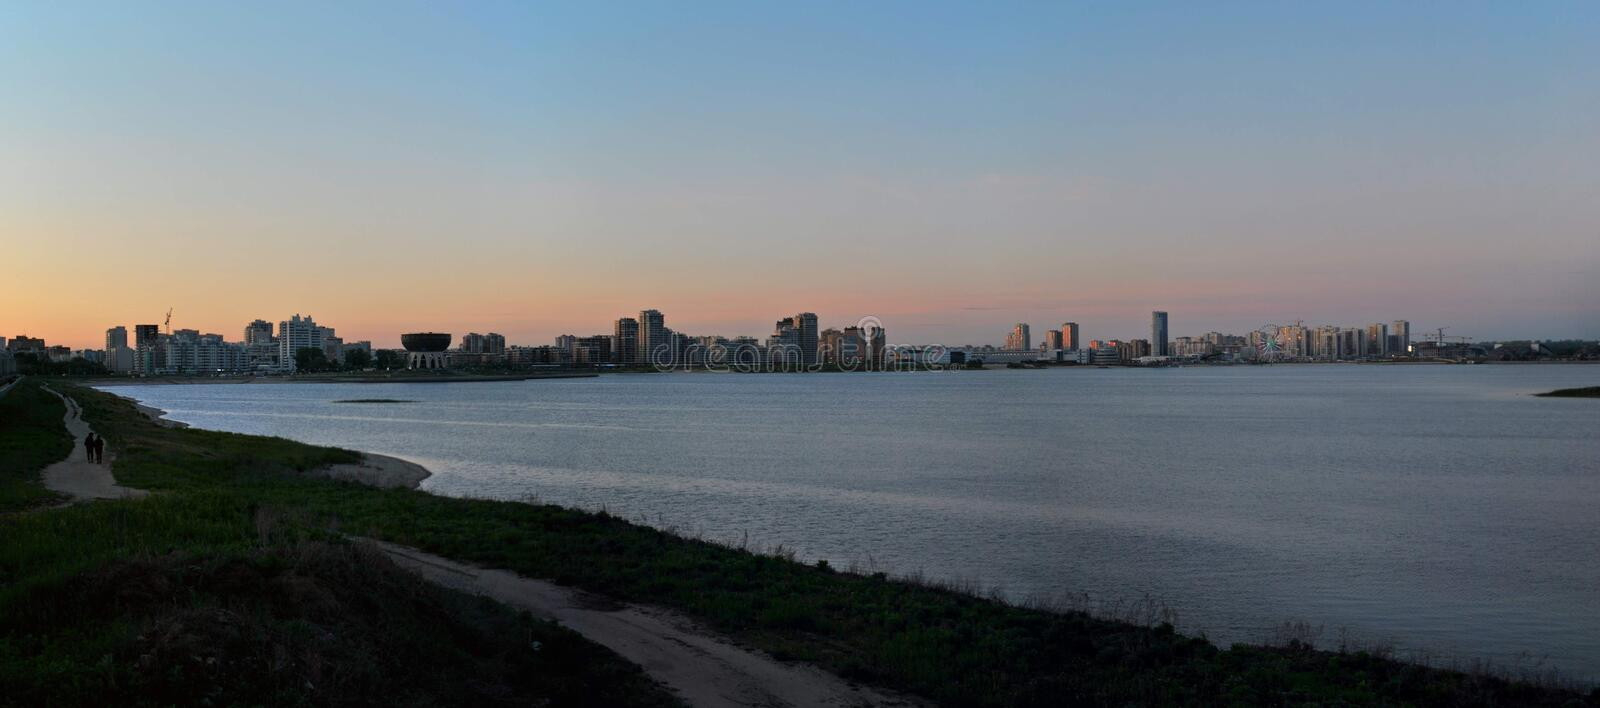 Silhouette of the city of Kazan with a view of the river Kazanka against the sunset sky. royalty free stock images